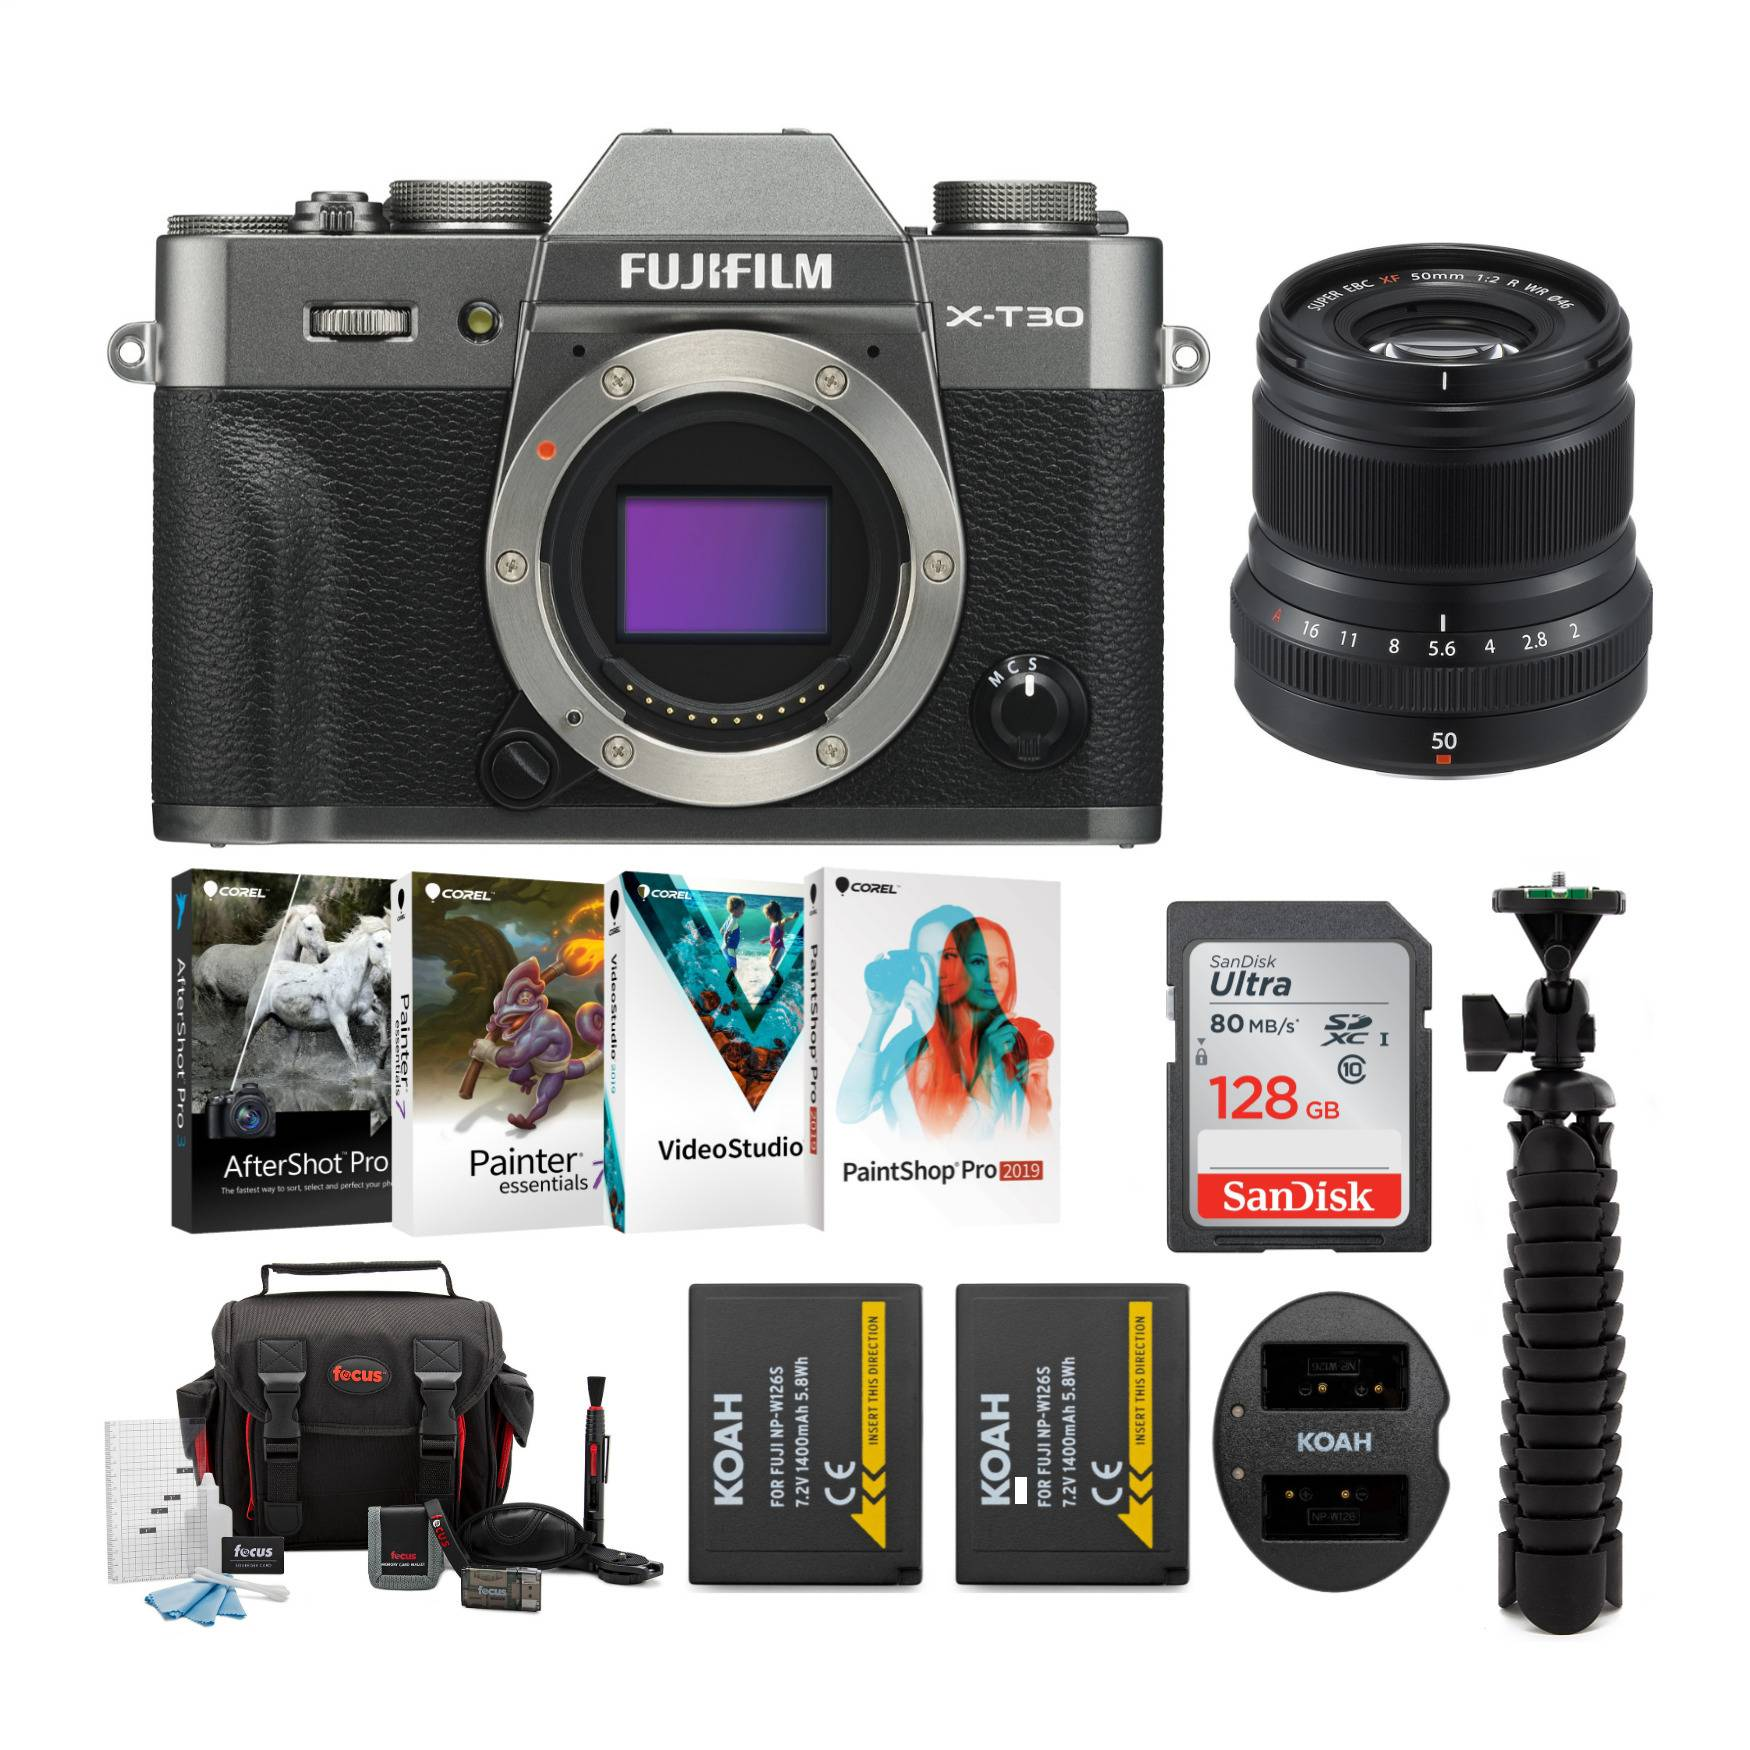 Fuji X-T30 Mirrorless Camera (Body, Charcoal Silver) with XF 50mm f/2 lens and Accessory Bundle